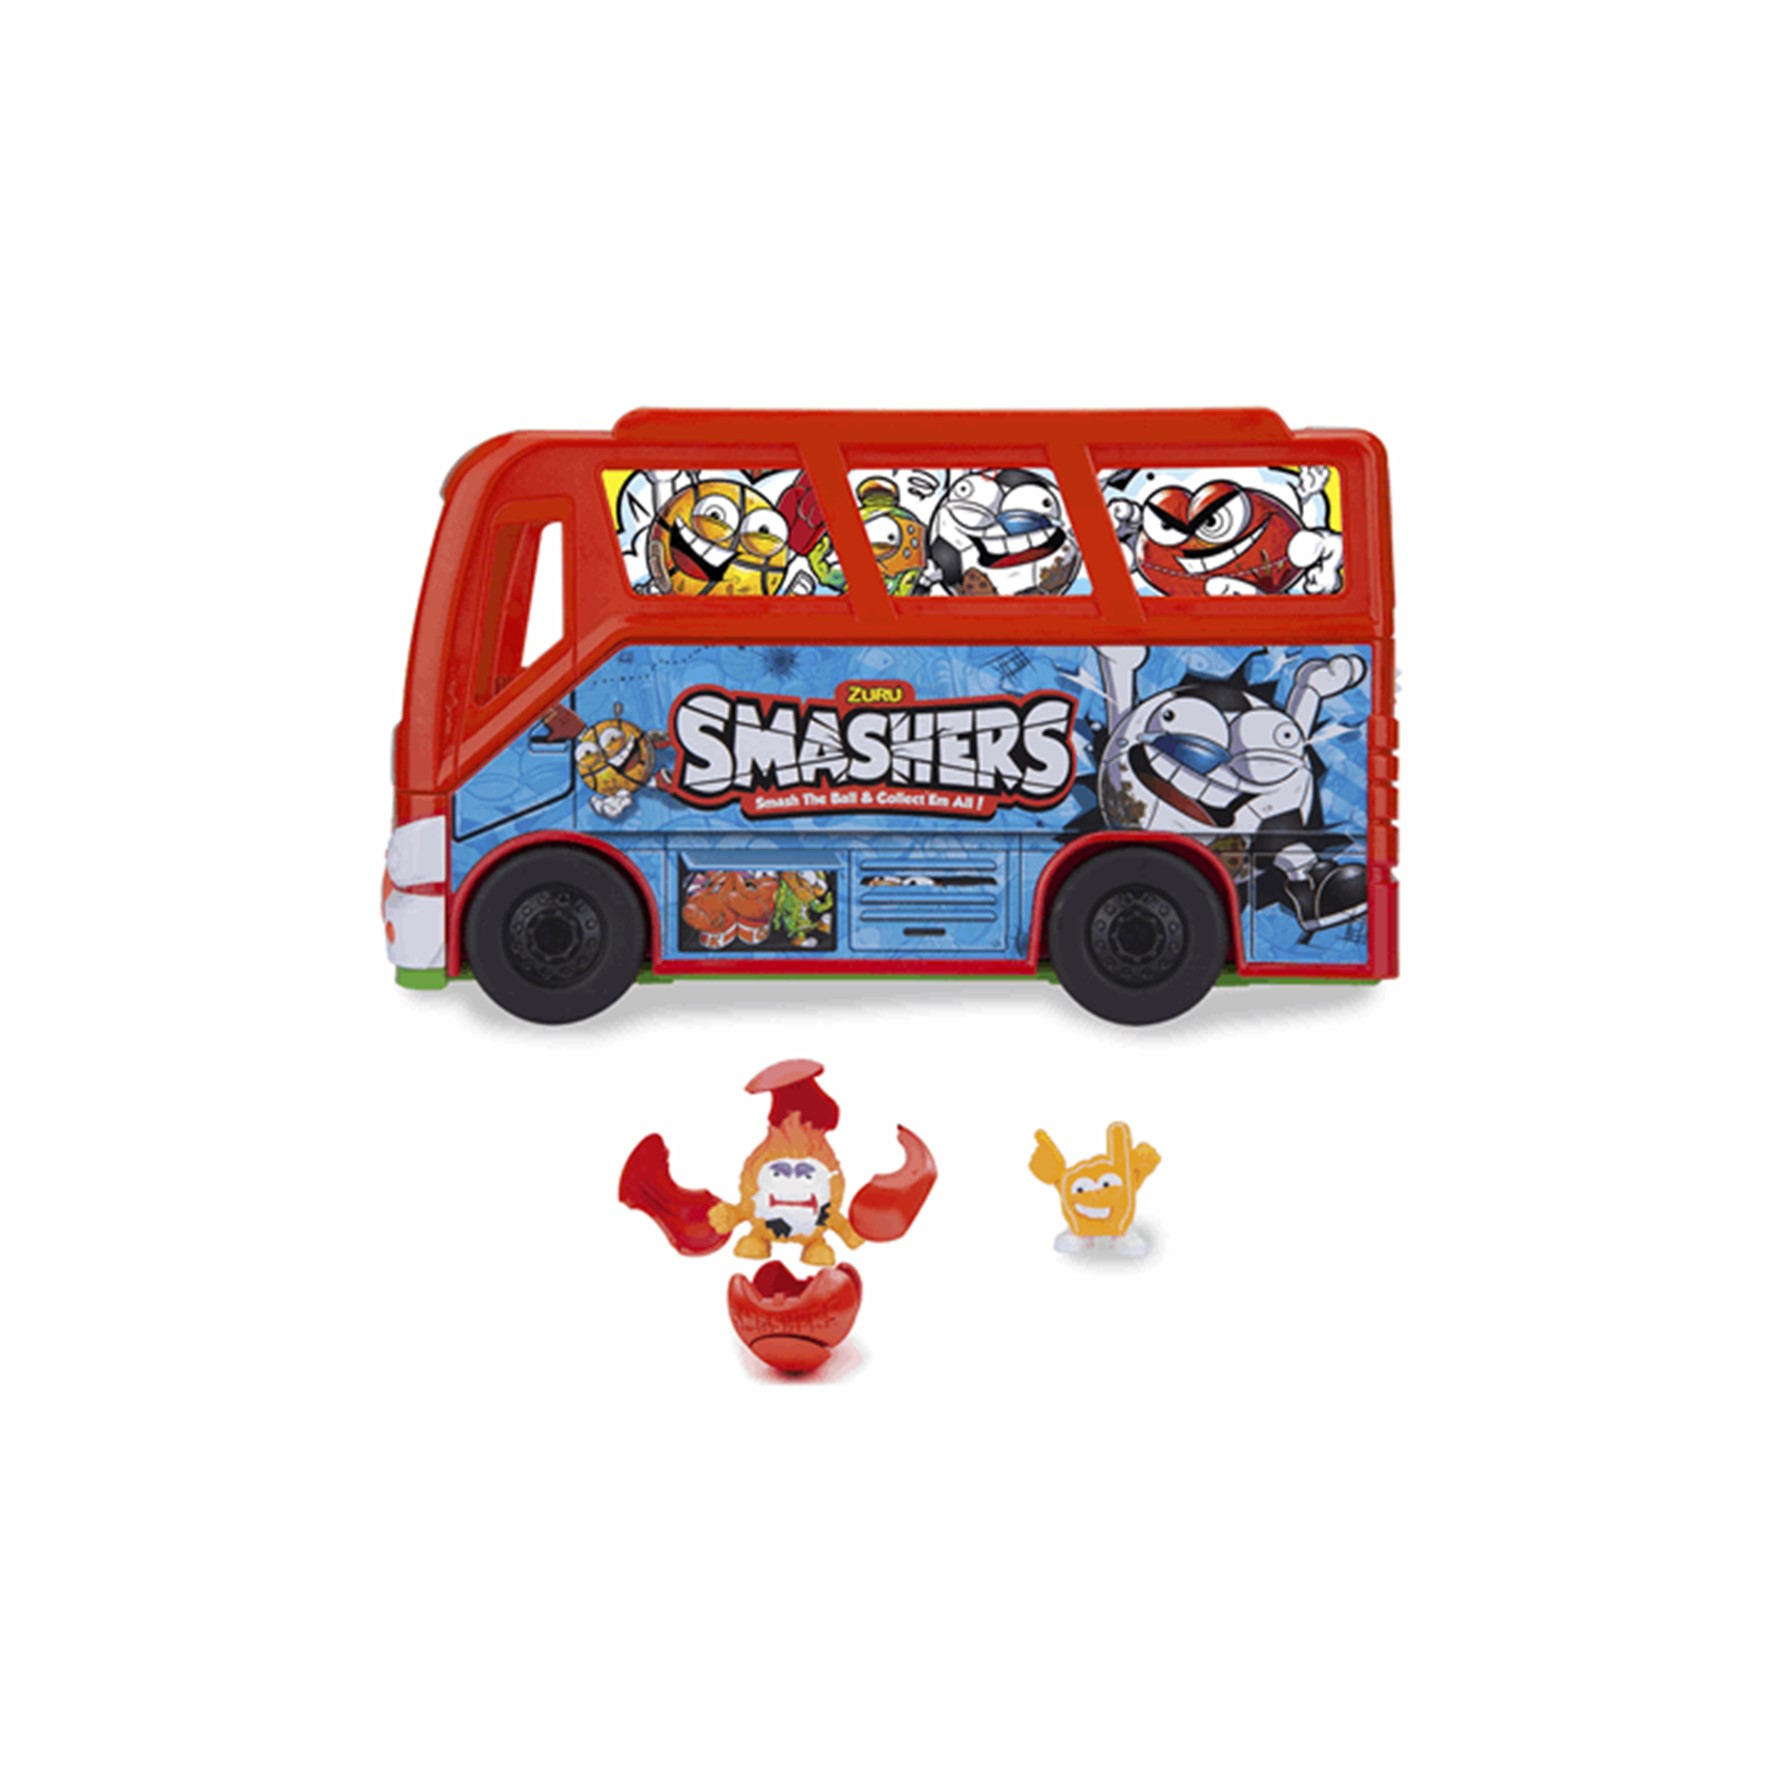 Smashers Team Bus Football